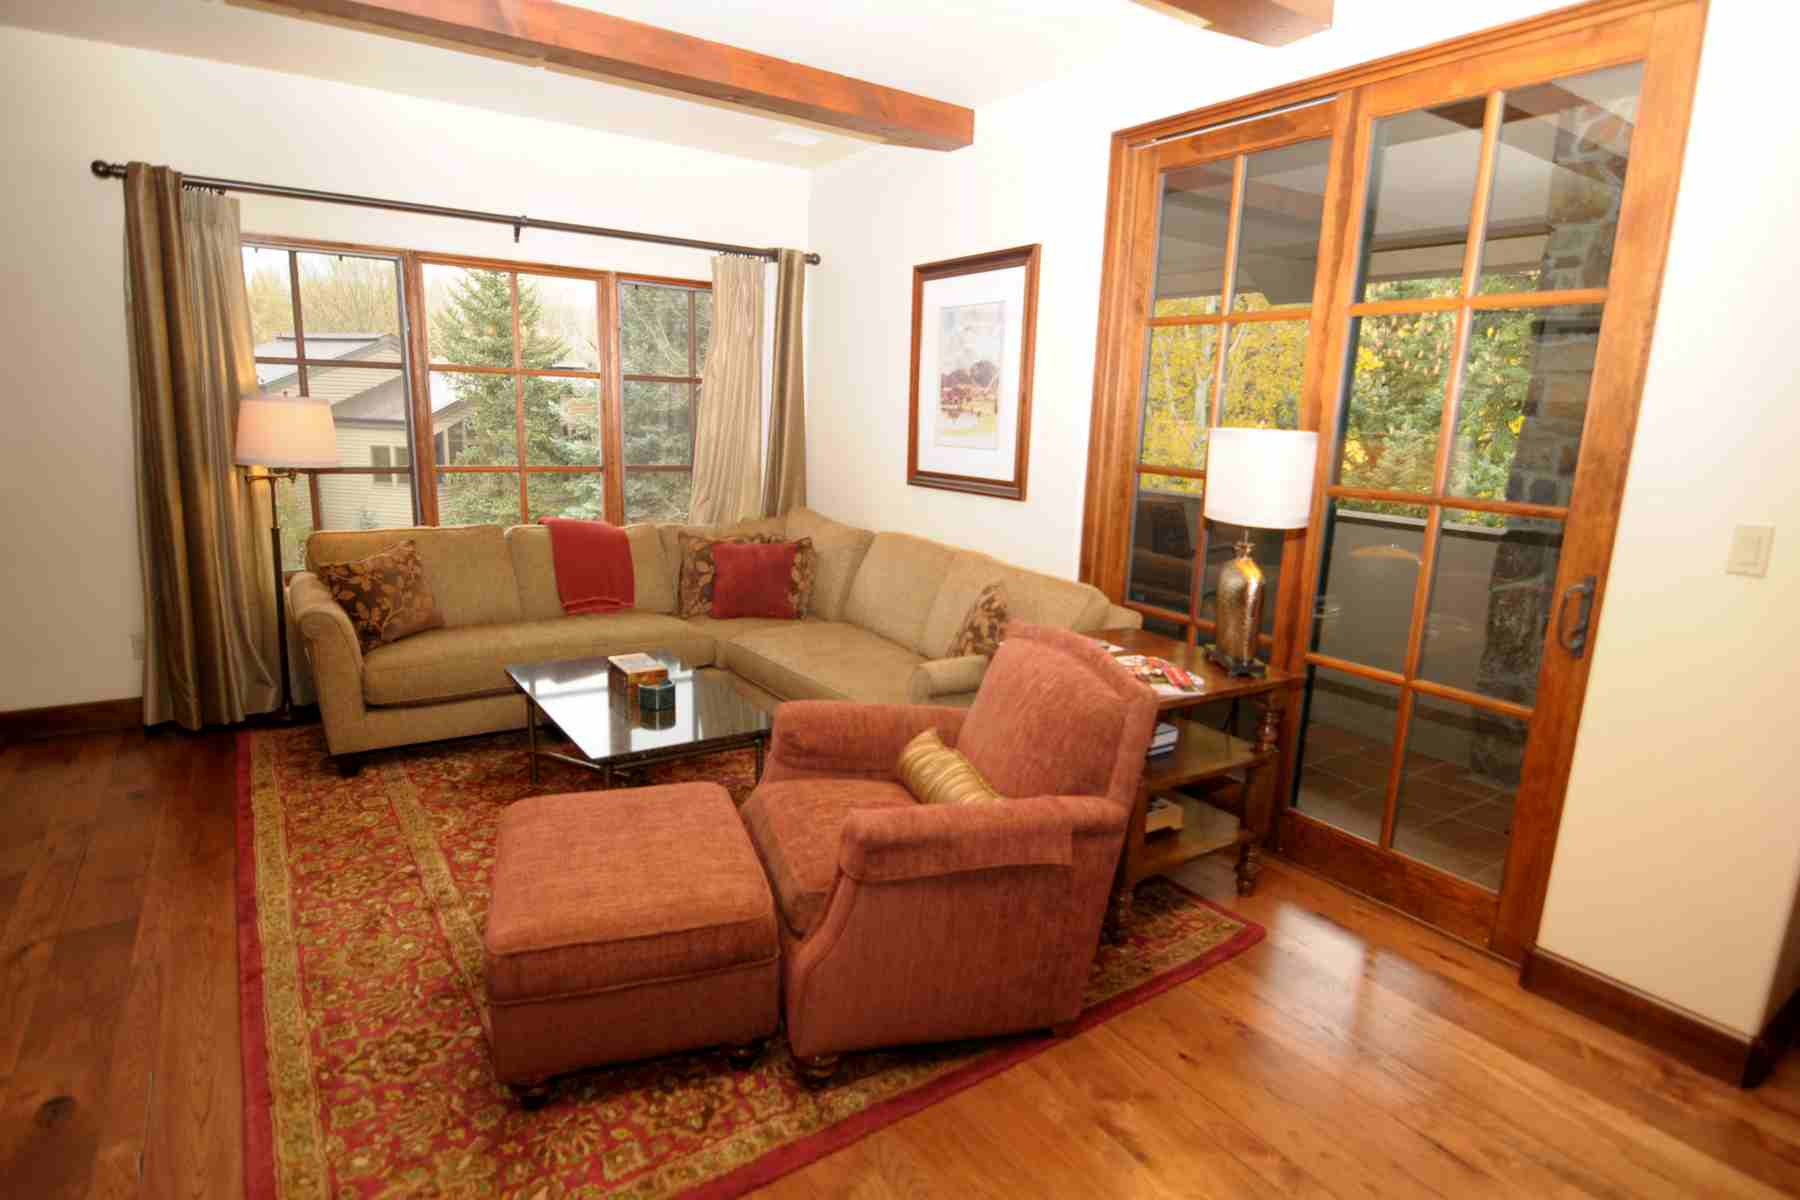 Single Family Home for Sale at Exceptional In Town Condo 680 E Sun Valley Rd #1 Ketchum, Idaho 83340 United States